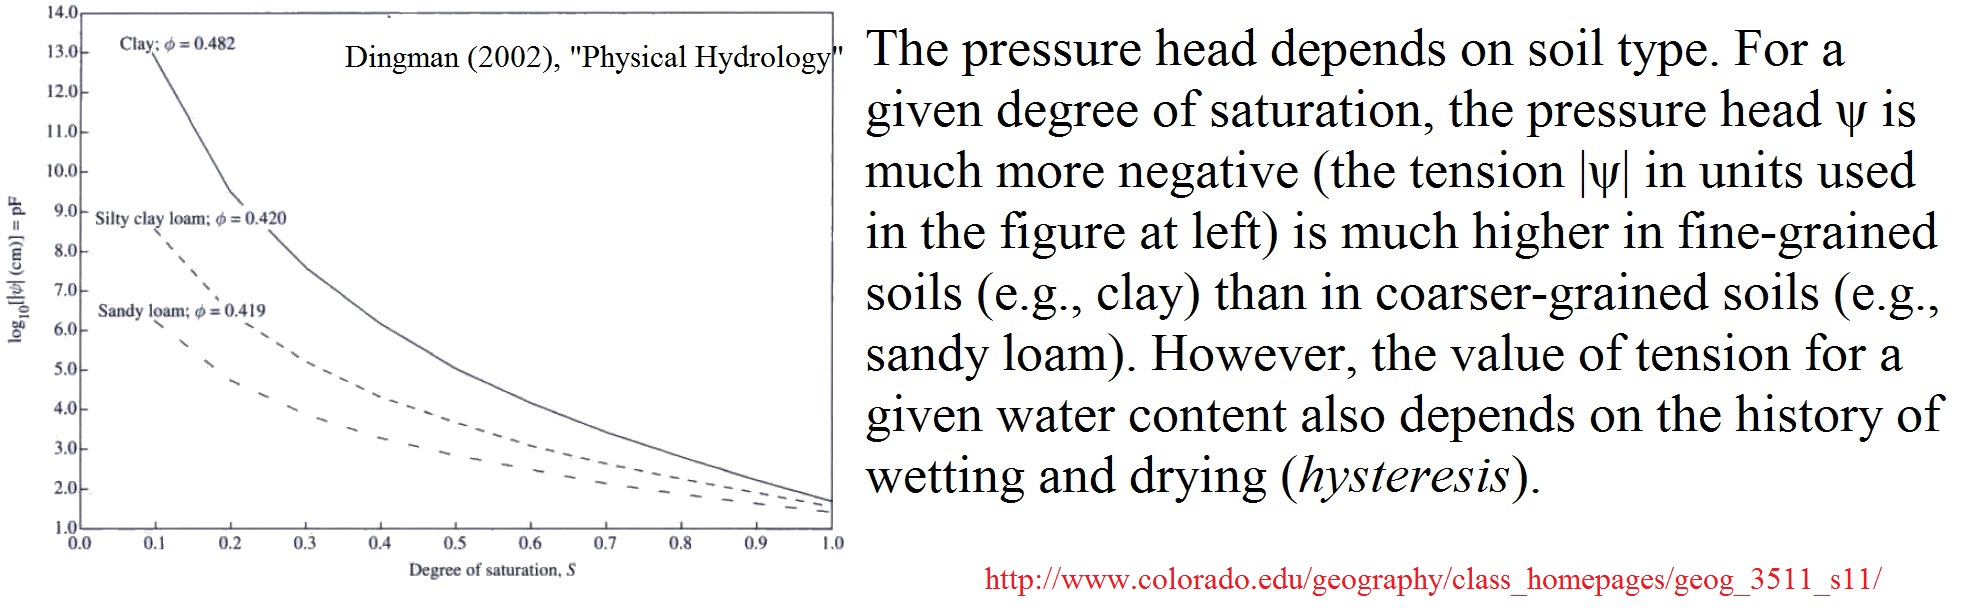 Could anyone advise the range of pore-air pressure and pore-water pressure in various soils?